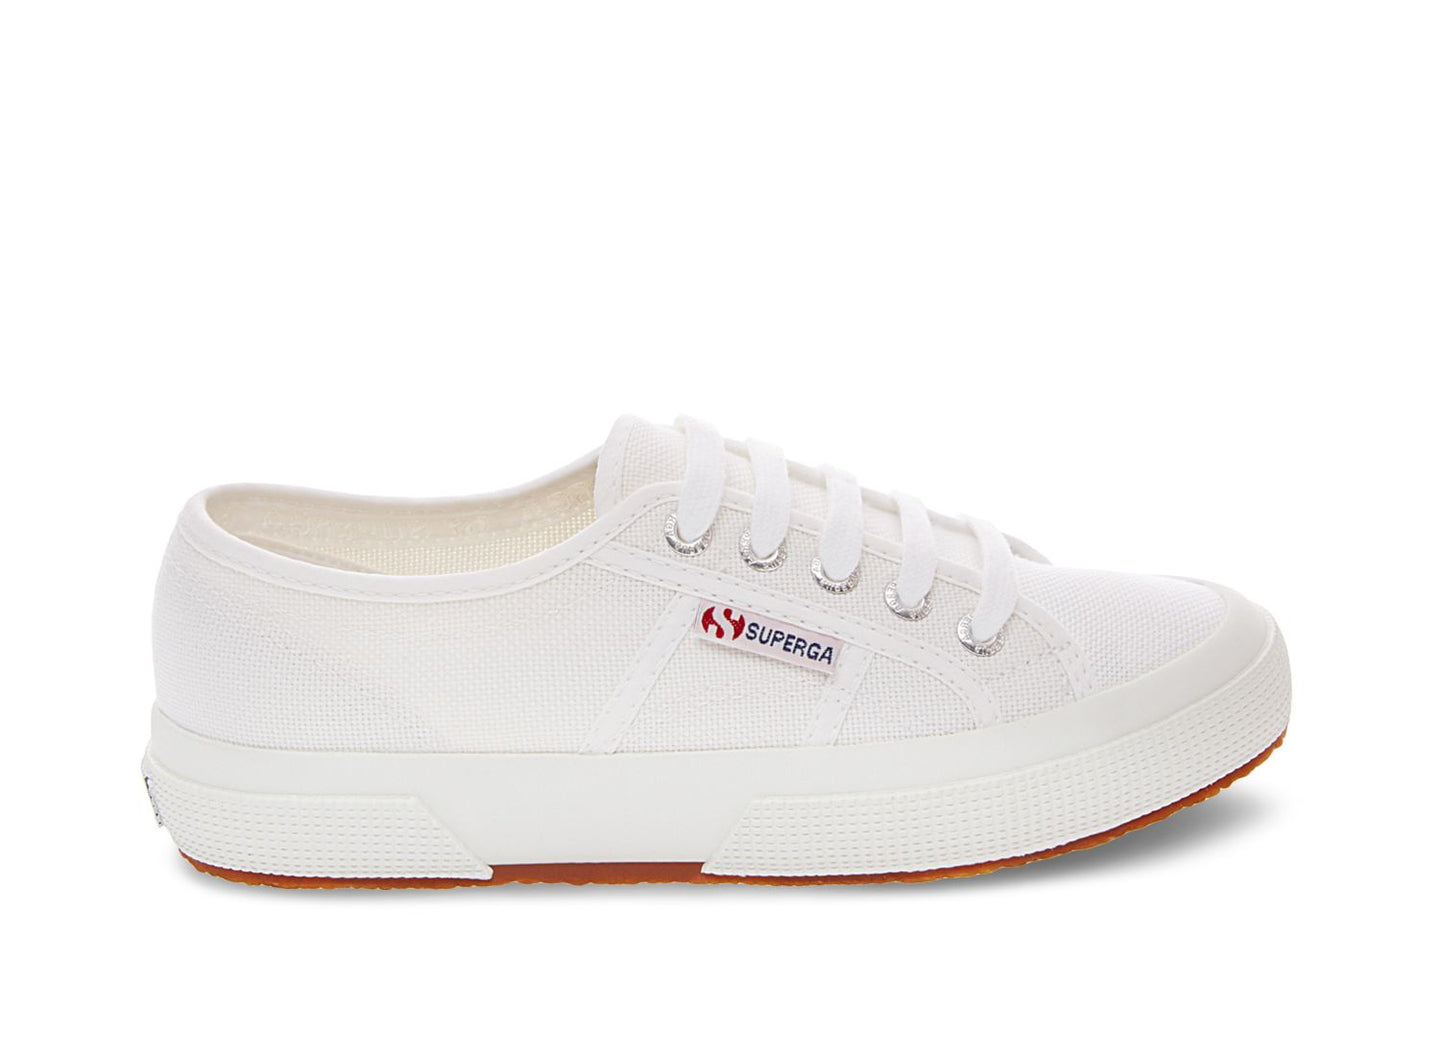 2750 COTU CLASSIC WHITE - Women's and Men's